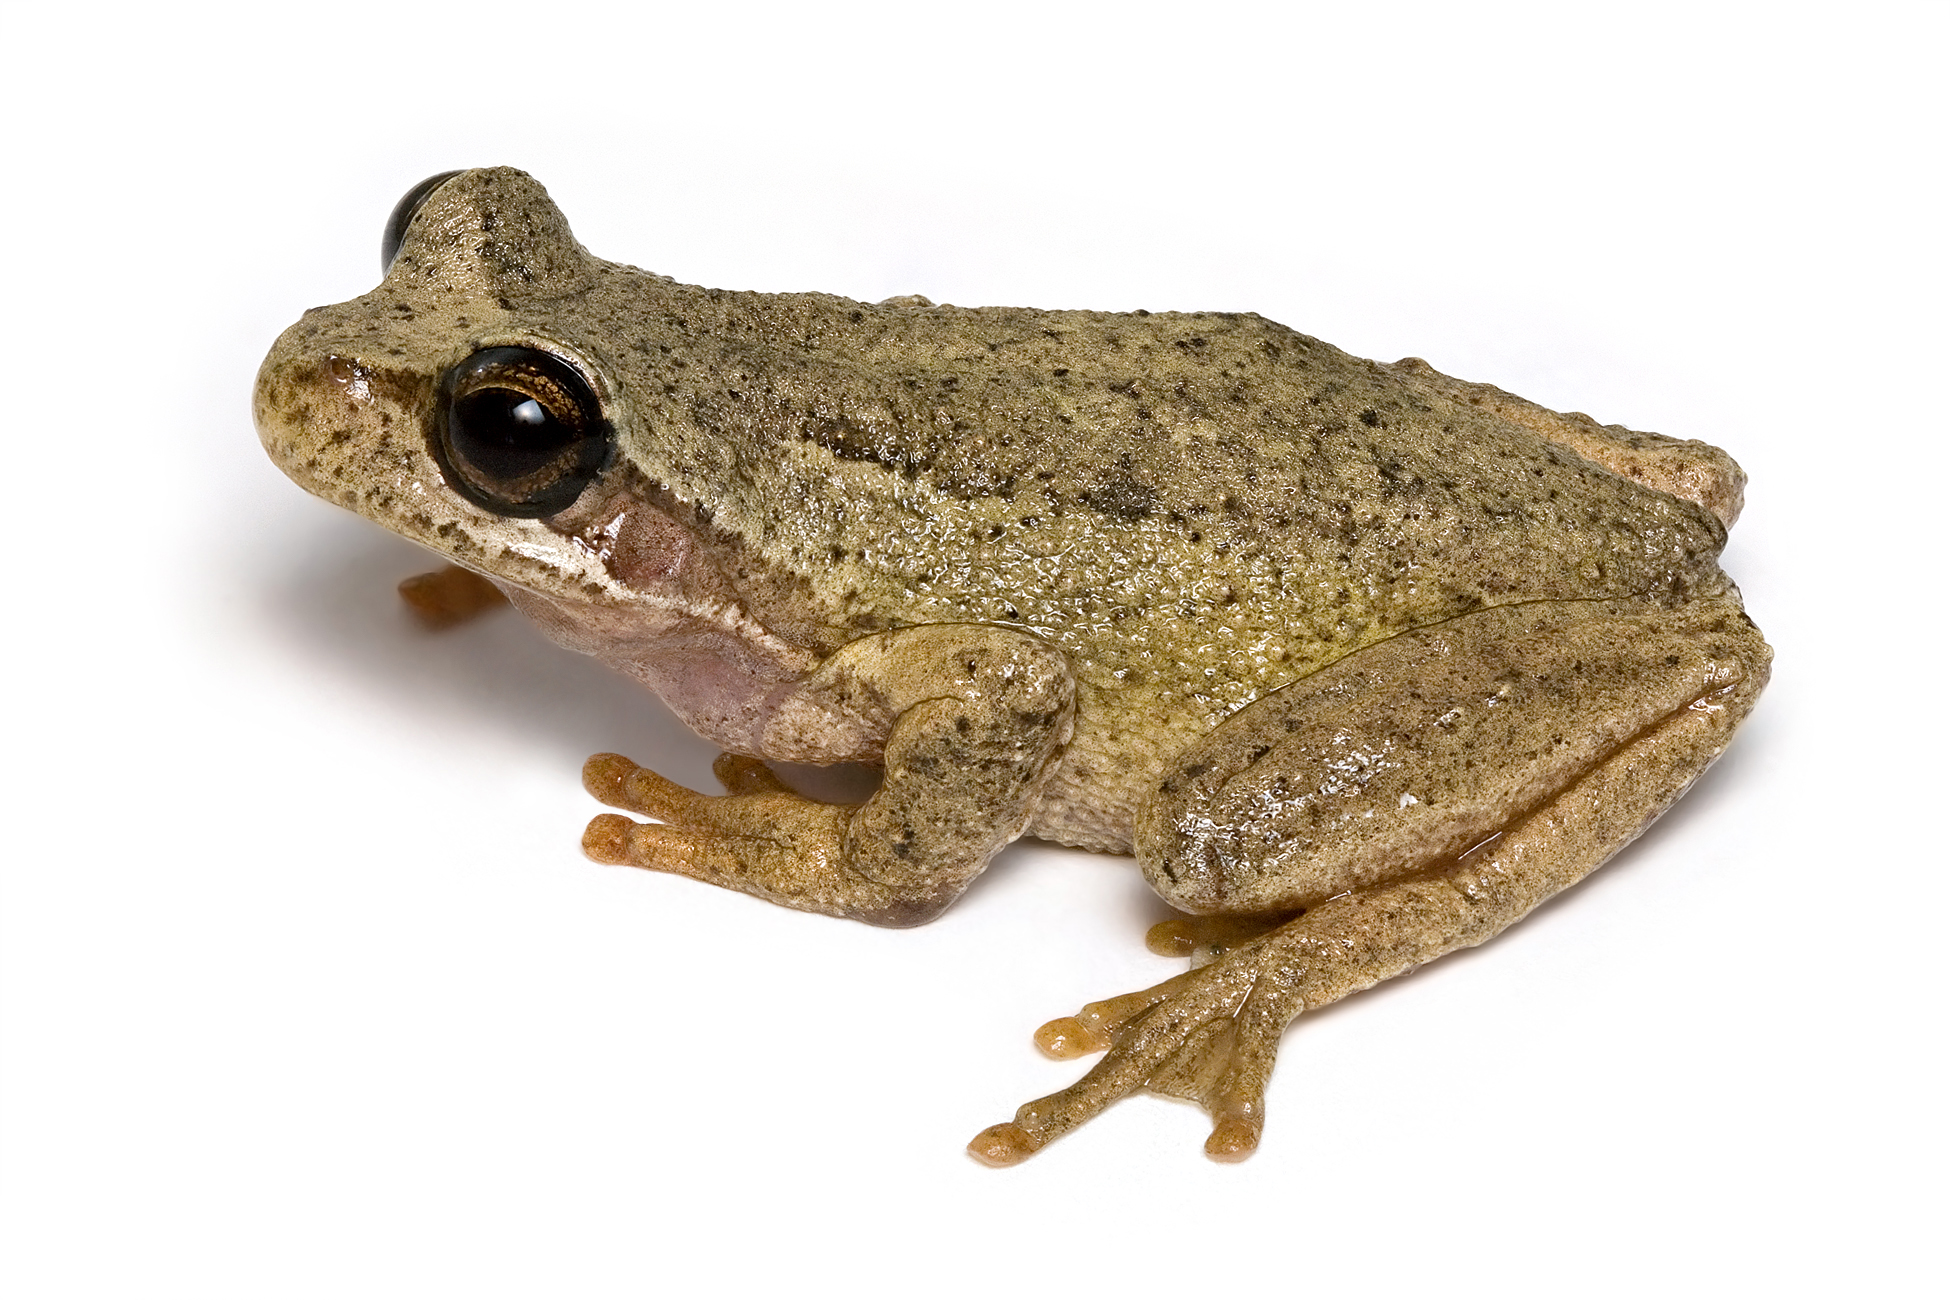 Southern brown tree frog - Wikipedia